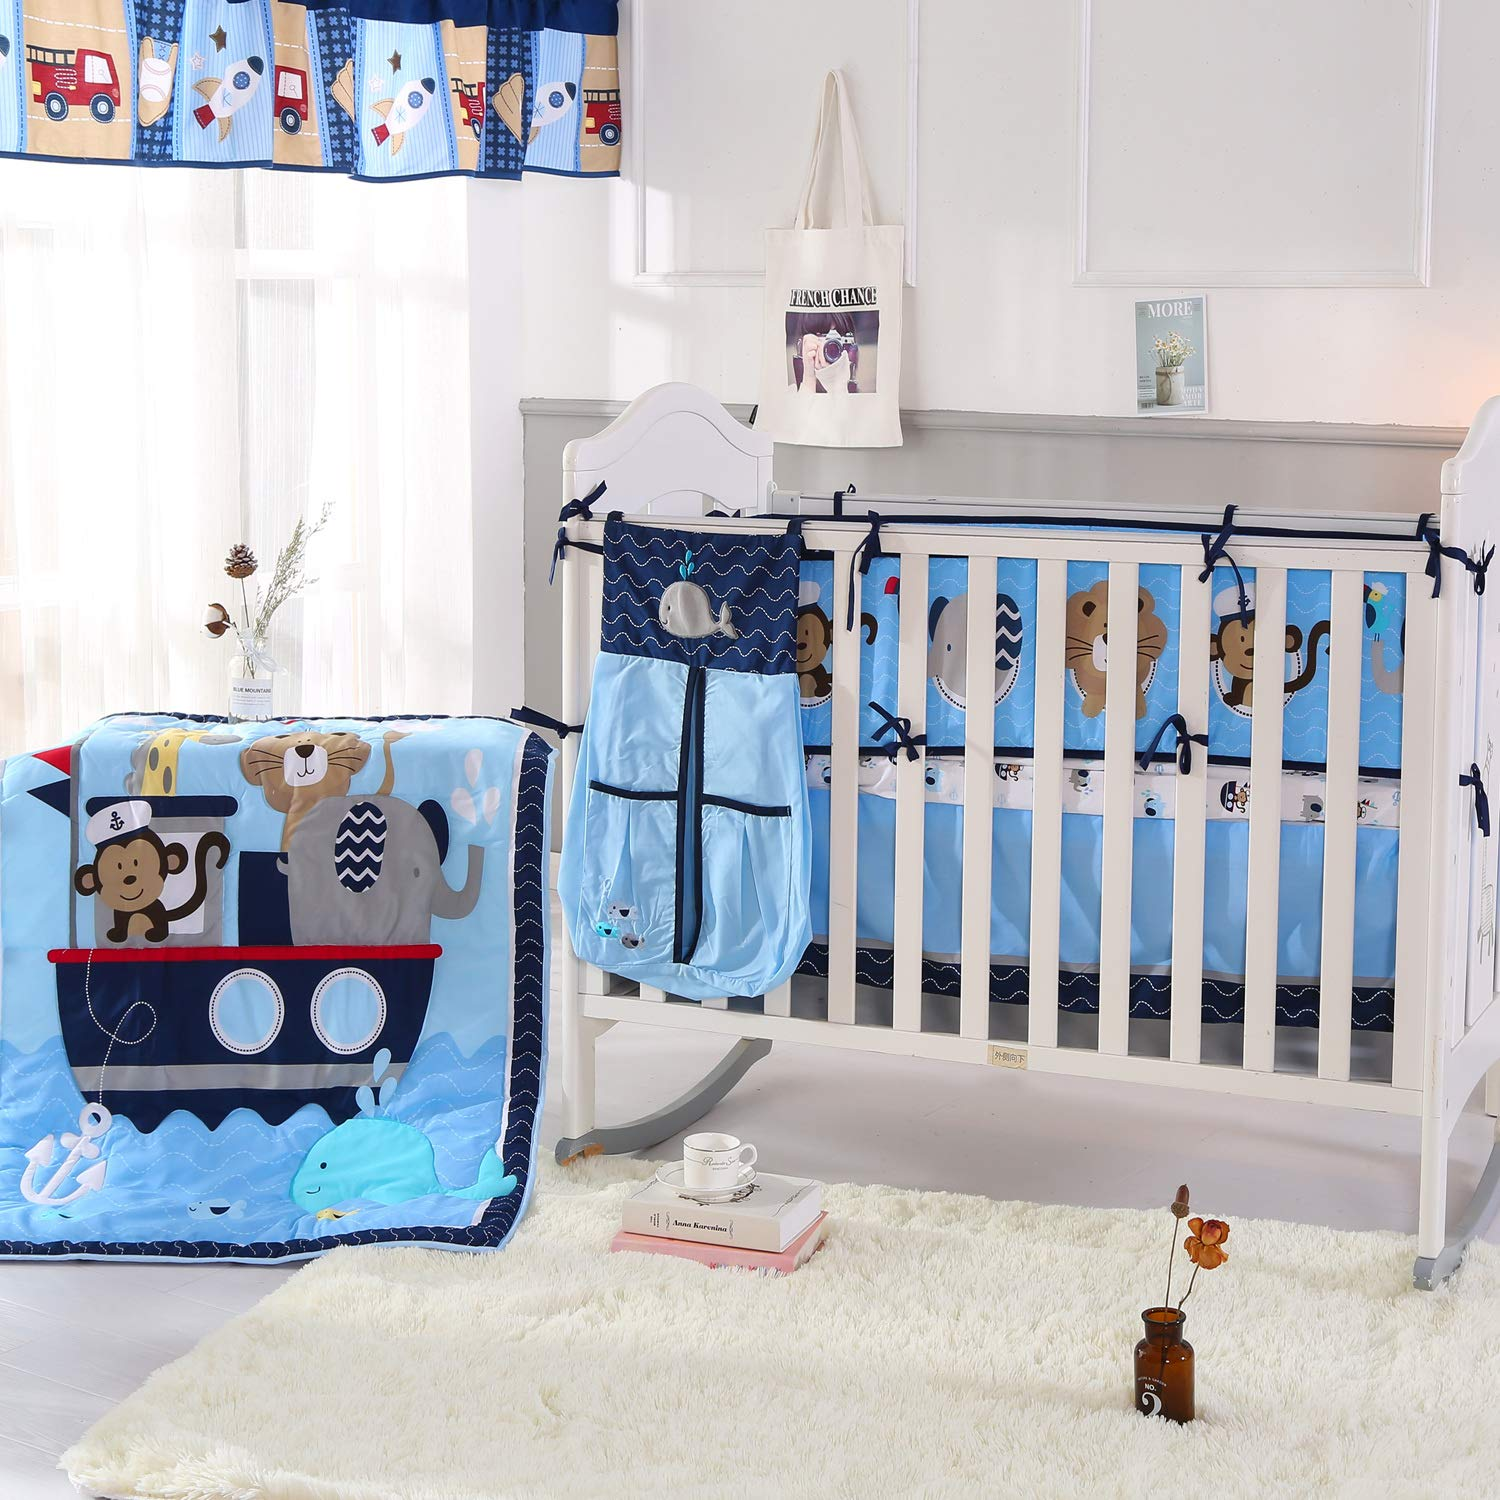 Wowelife Animal Baby Crib Sets Blue Upgraded 9 Piece Monkey Elephant Lion and Giraffe Crib Bedding Sets Cotton with Bumpers and Diaper Stacker(Sea Journey)